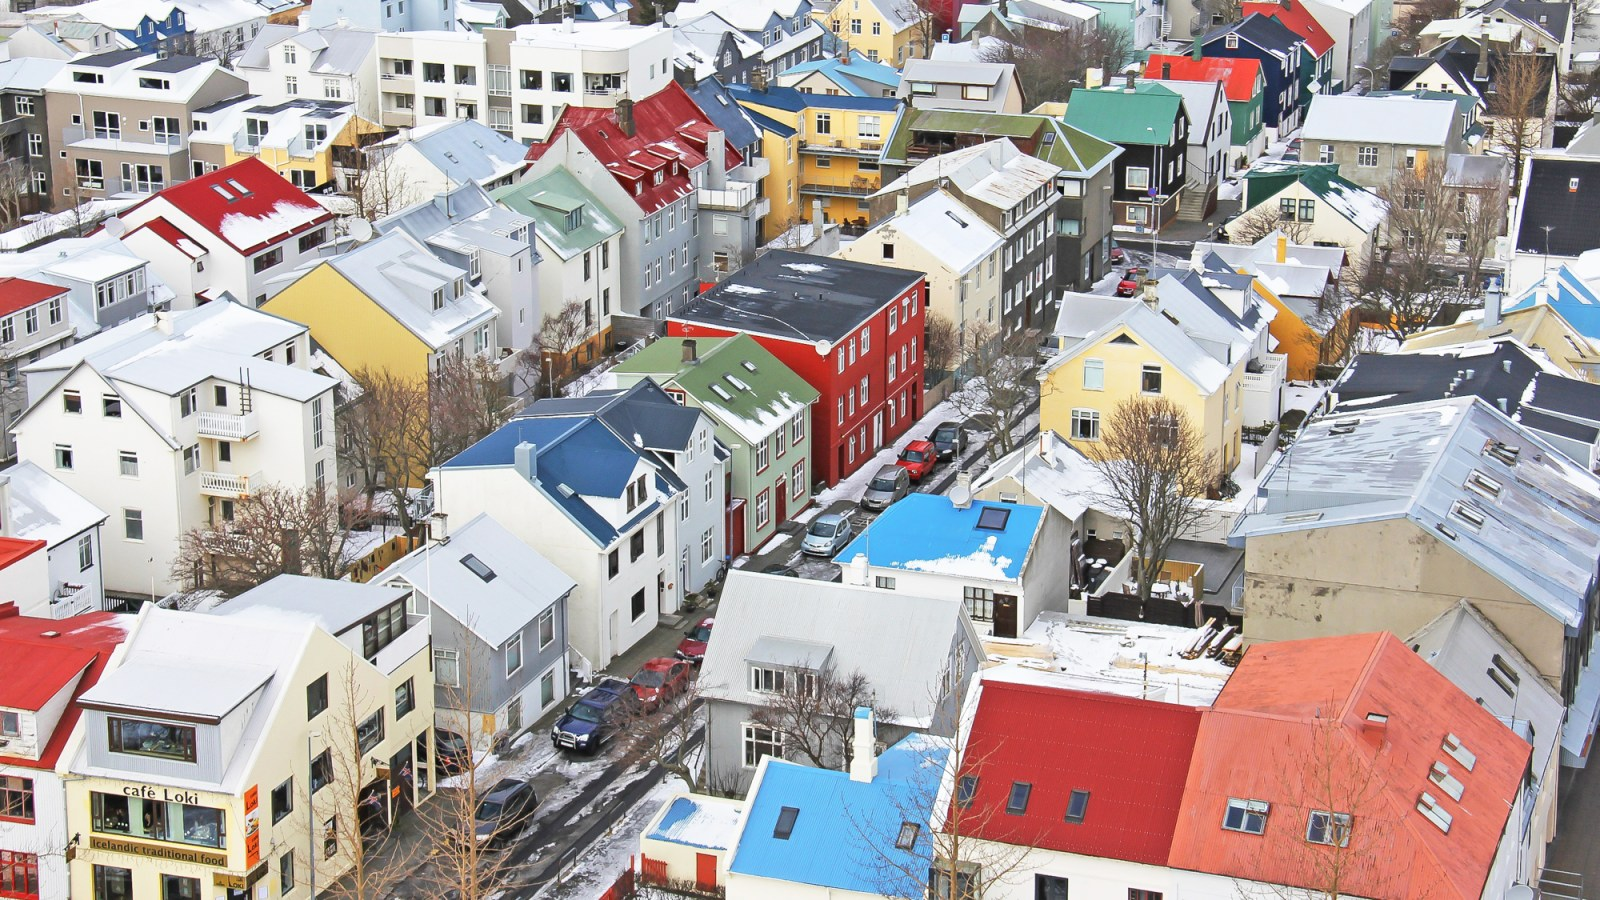 Get to know Iceland | Reykjavik | Where to stay in Iceland, what to pack for Iceland, and what you need to know about Iceland | #timebudgettravel #traveltips #Iceland #reykjavik #bluelagoon